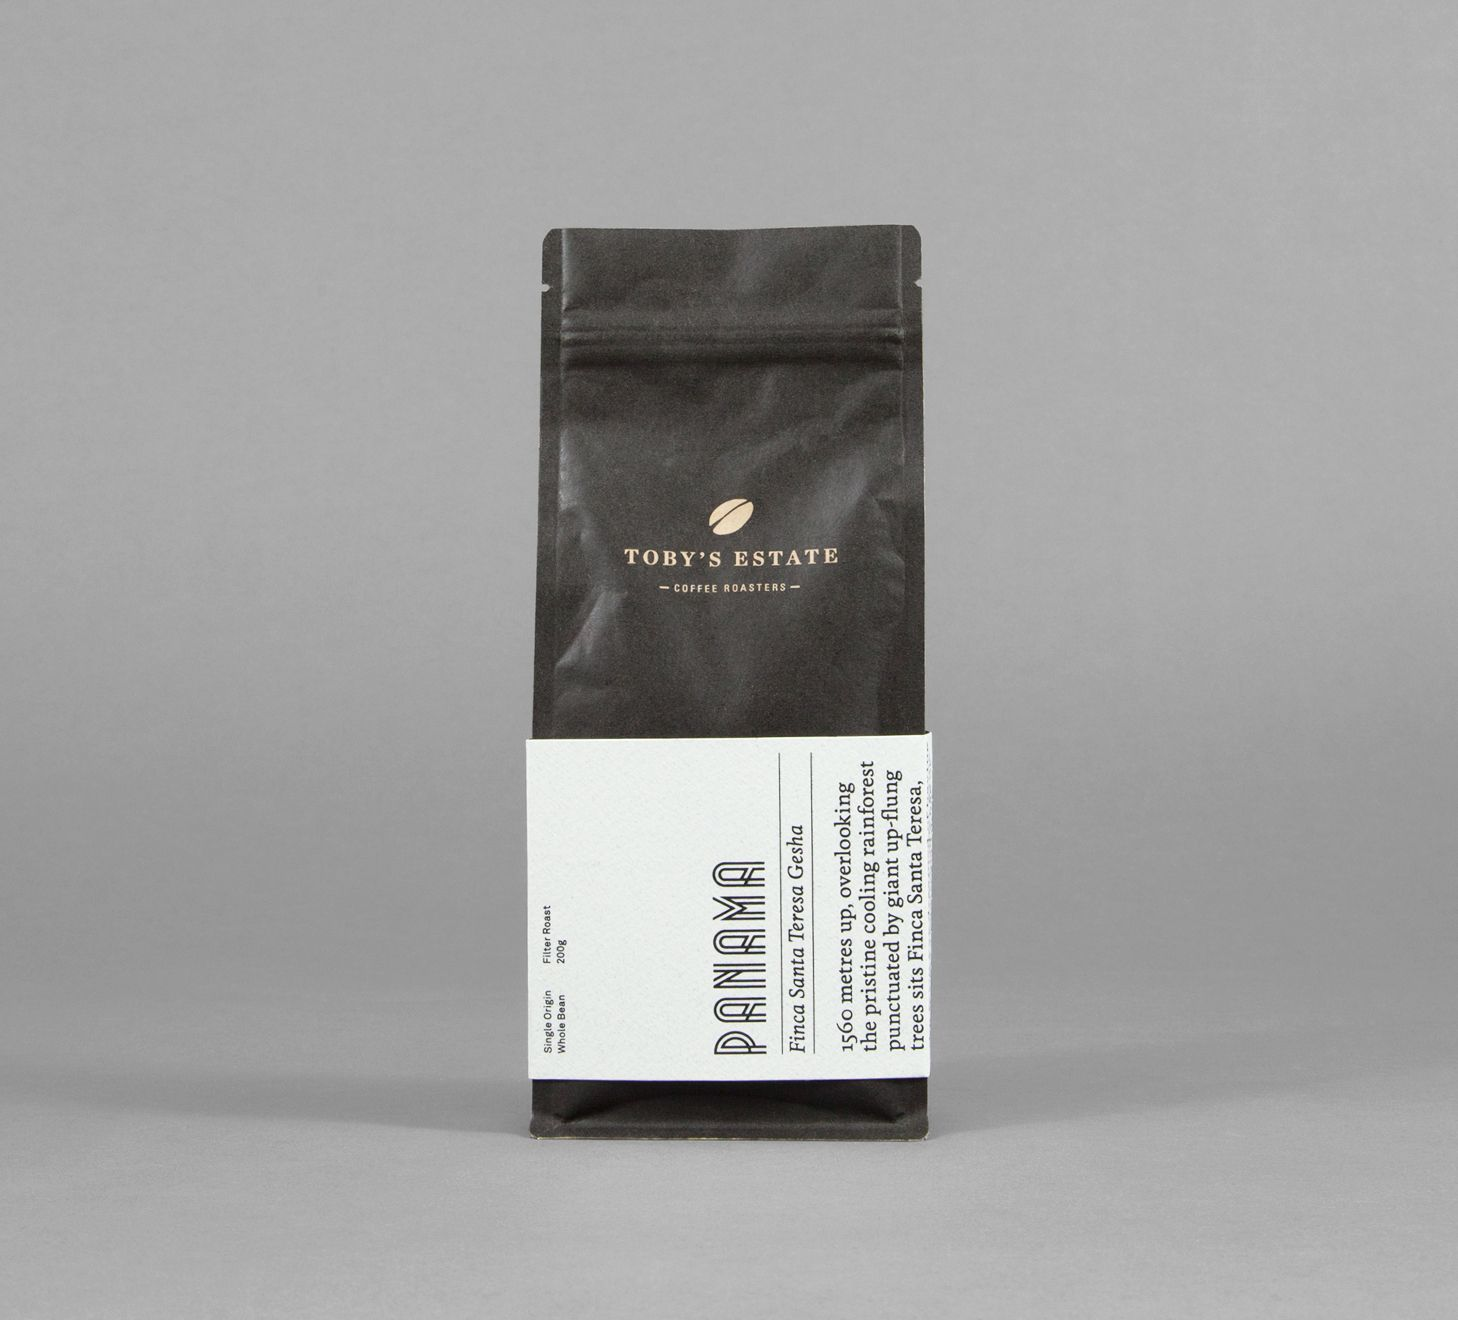 Toby's Estate coffee bean packaging designed by Maud